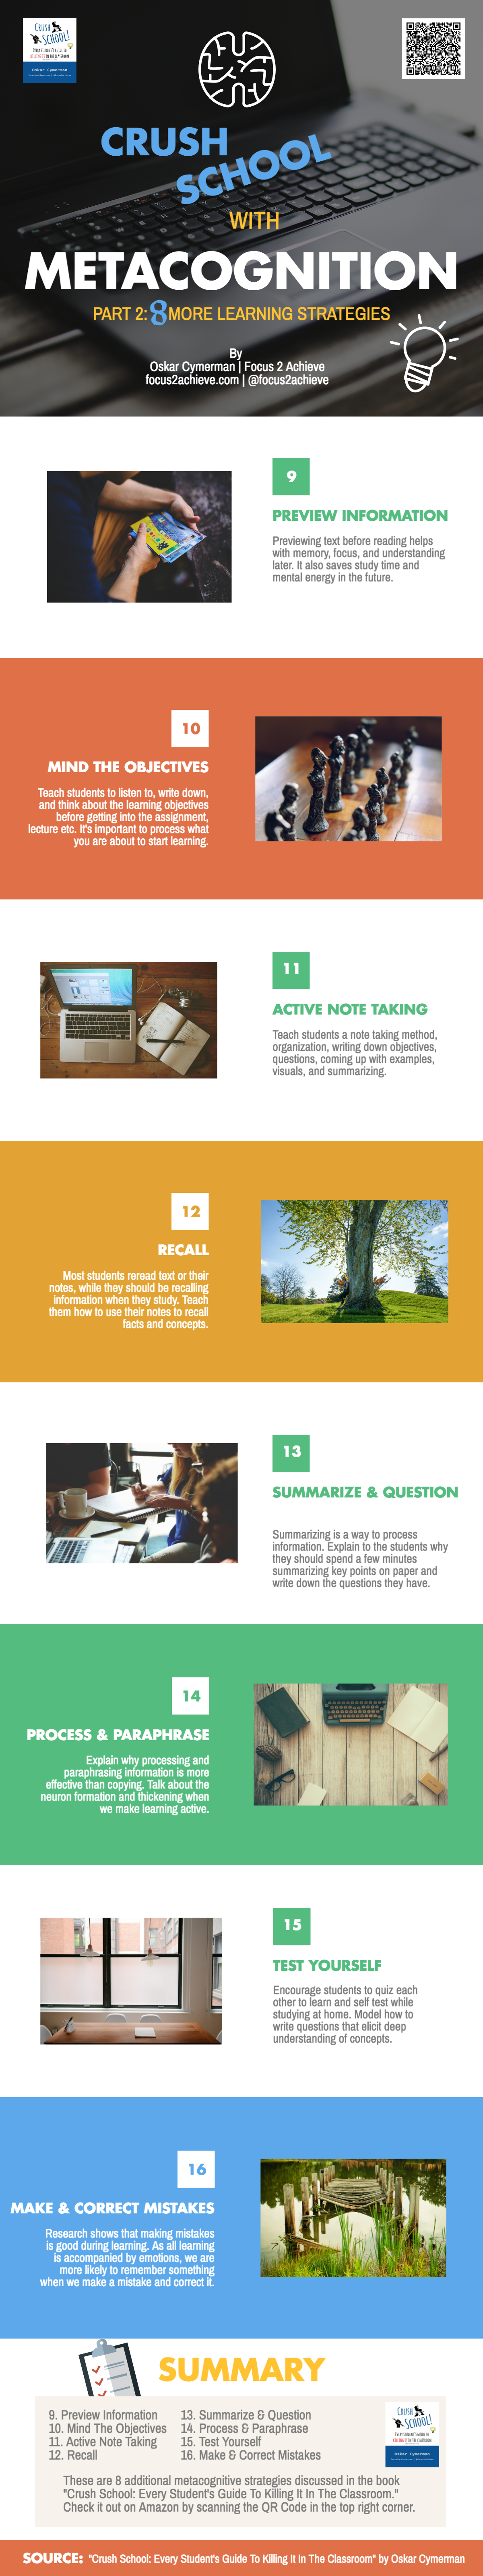 8 More Metacognitive Learning Strategies for School